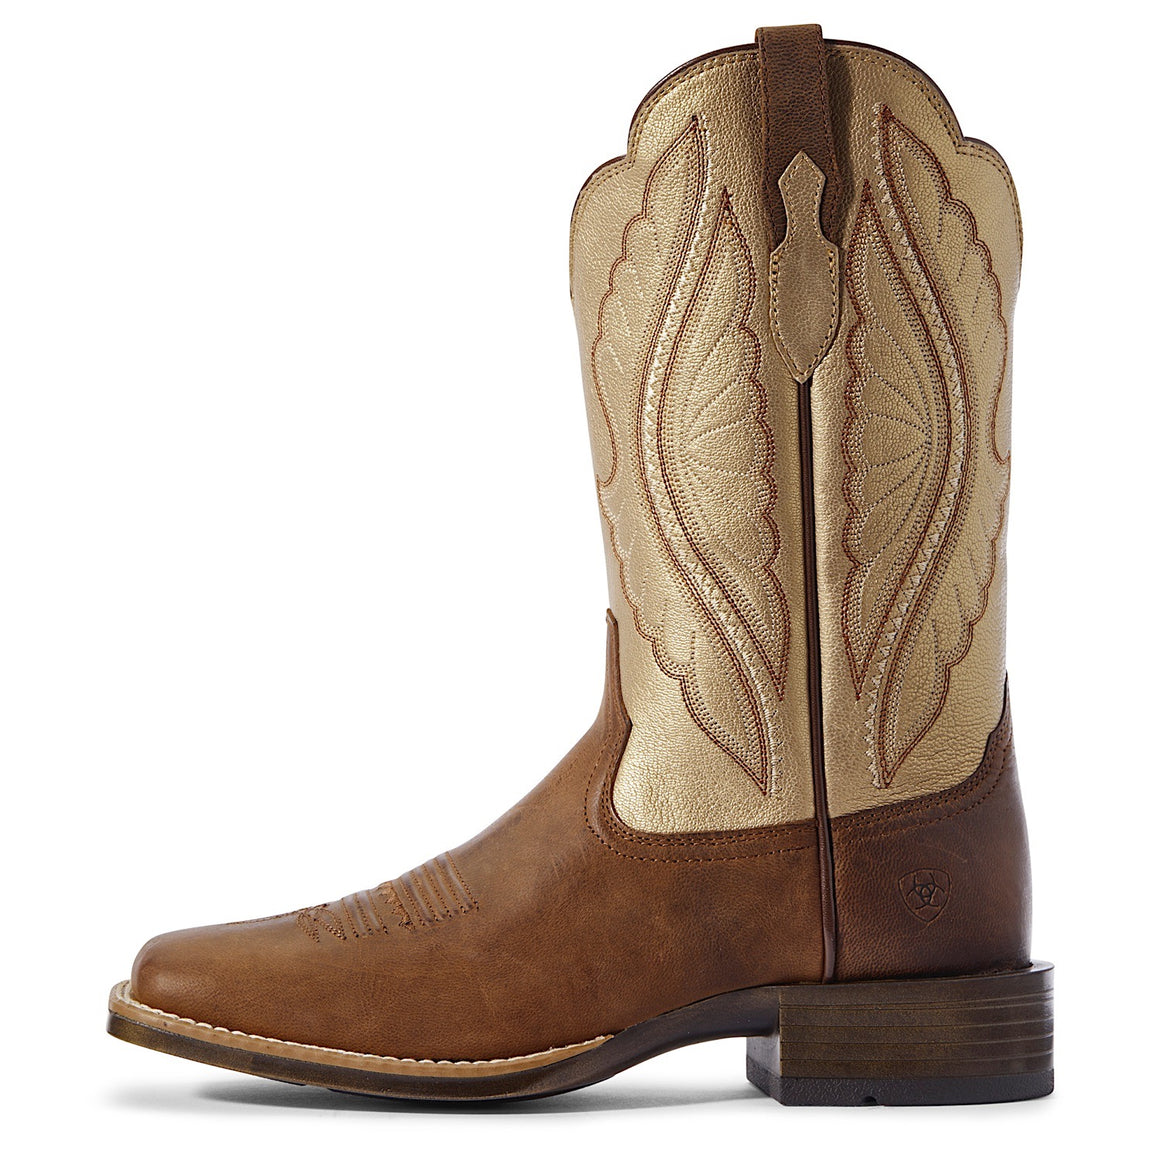 Ariat Womens Prime Time Western Boot Sassy Brown/Pop Gold